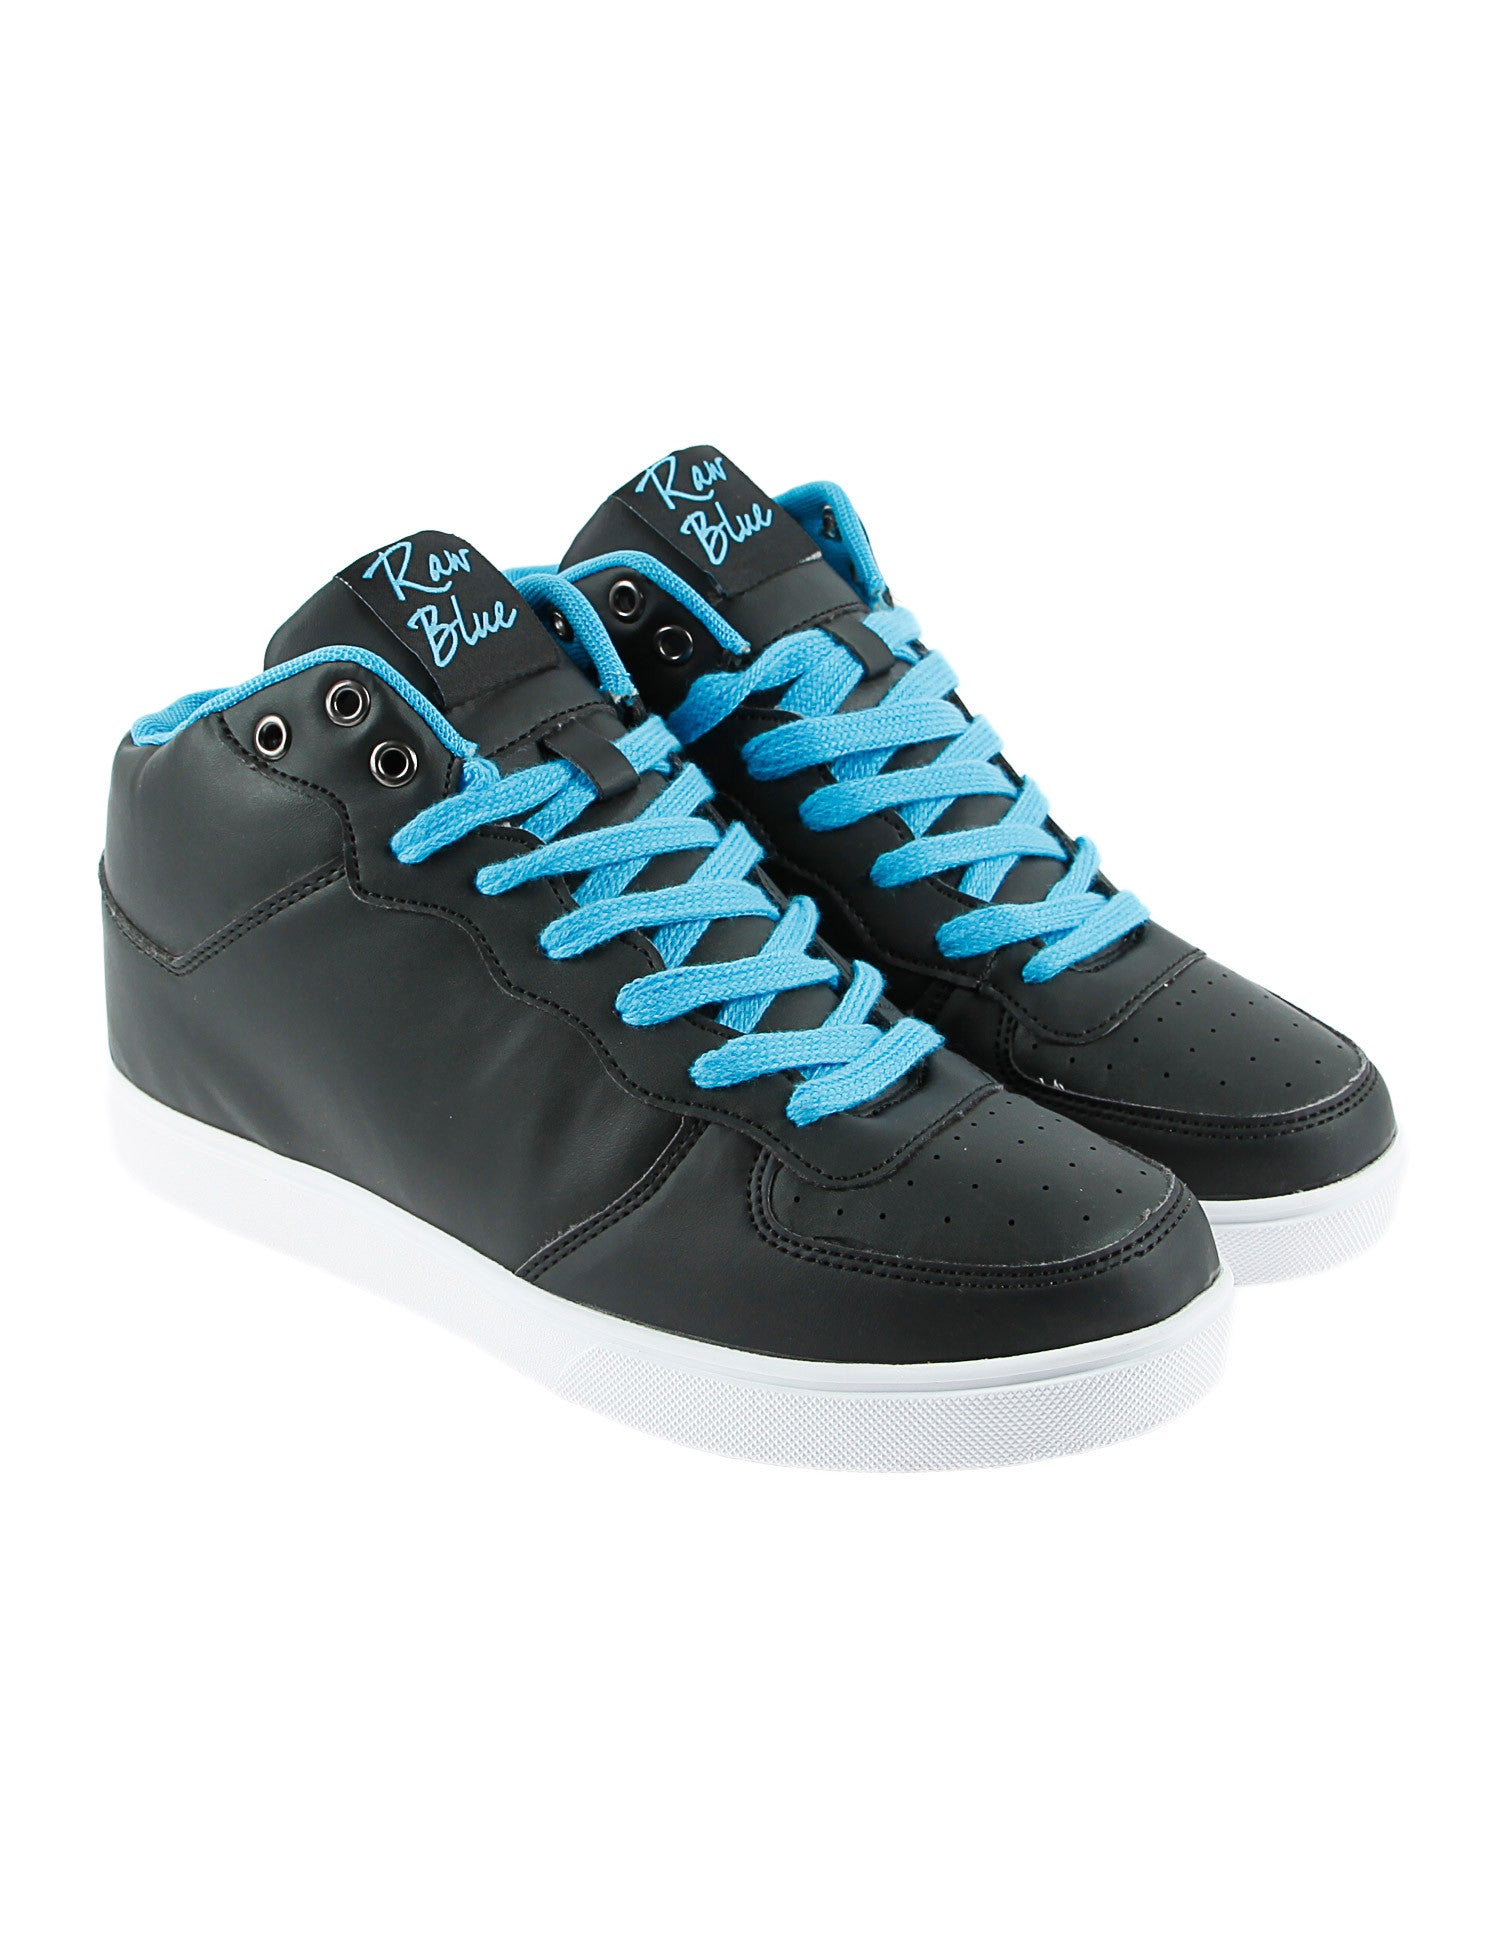 Raw Blue RBS-HIGH-155G Shoes Aqua Black